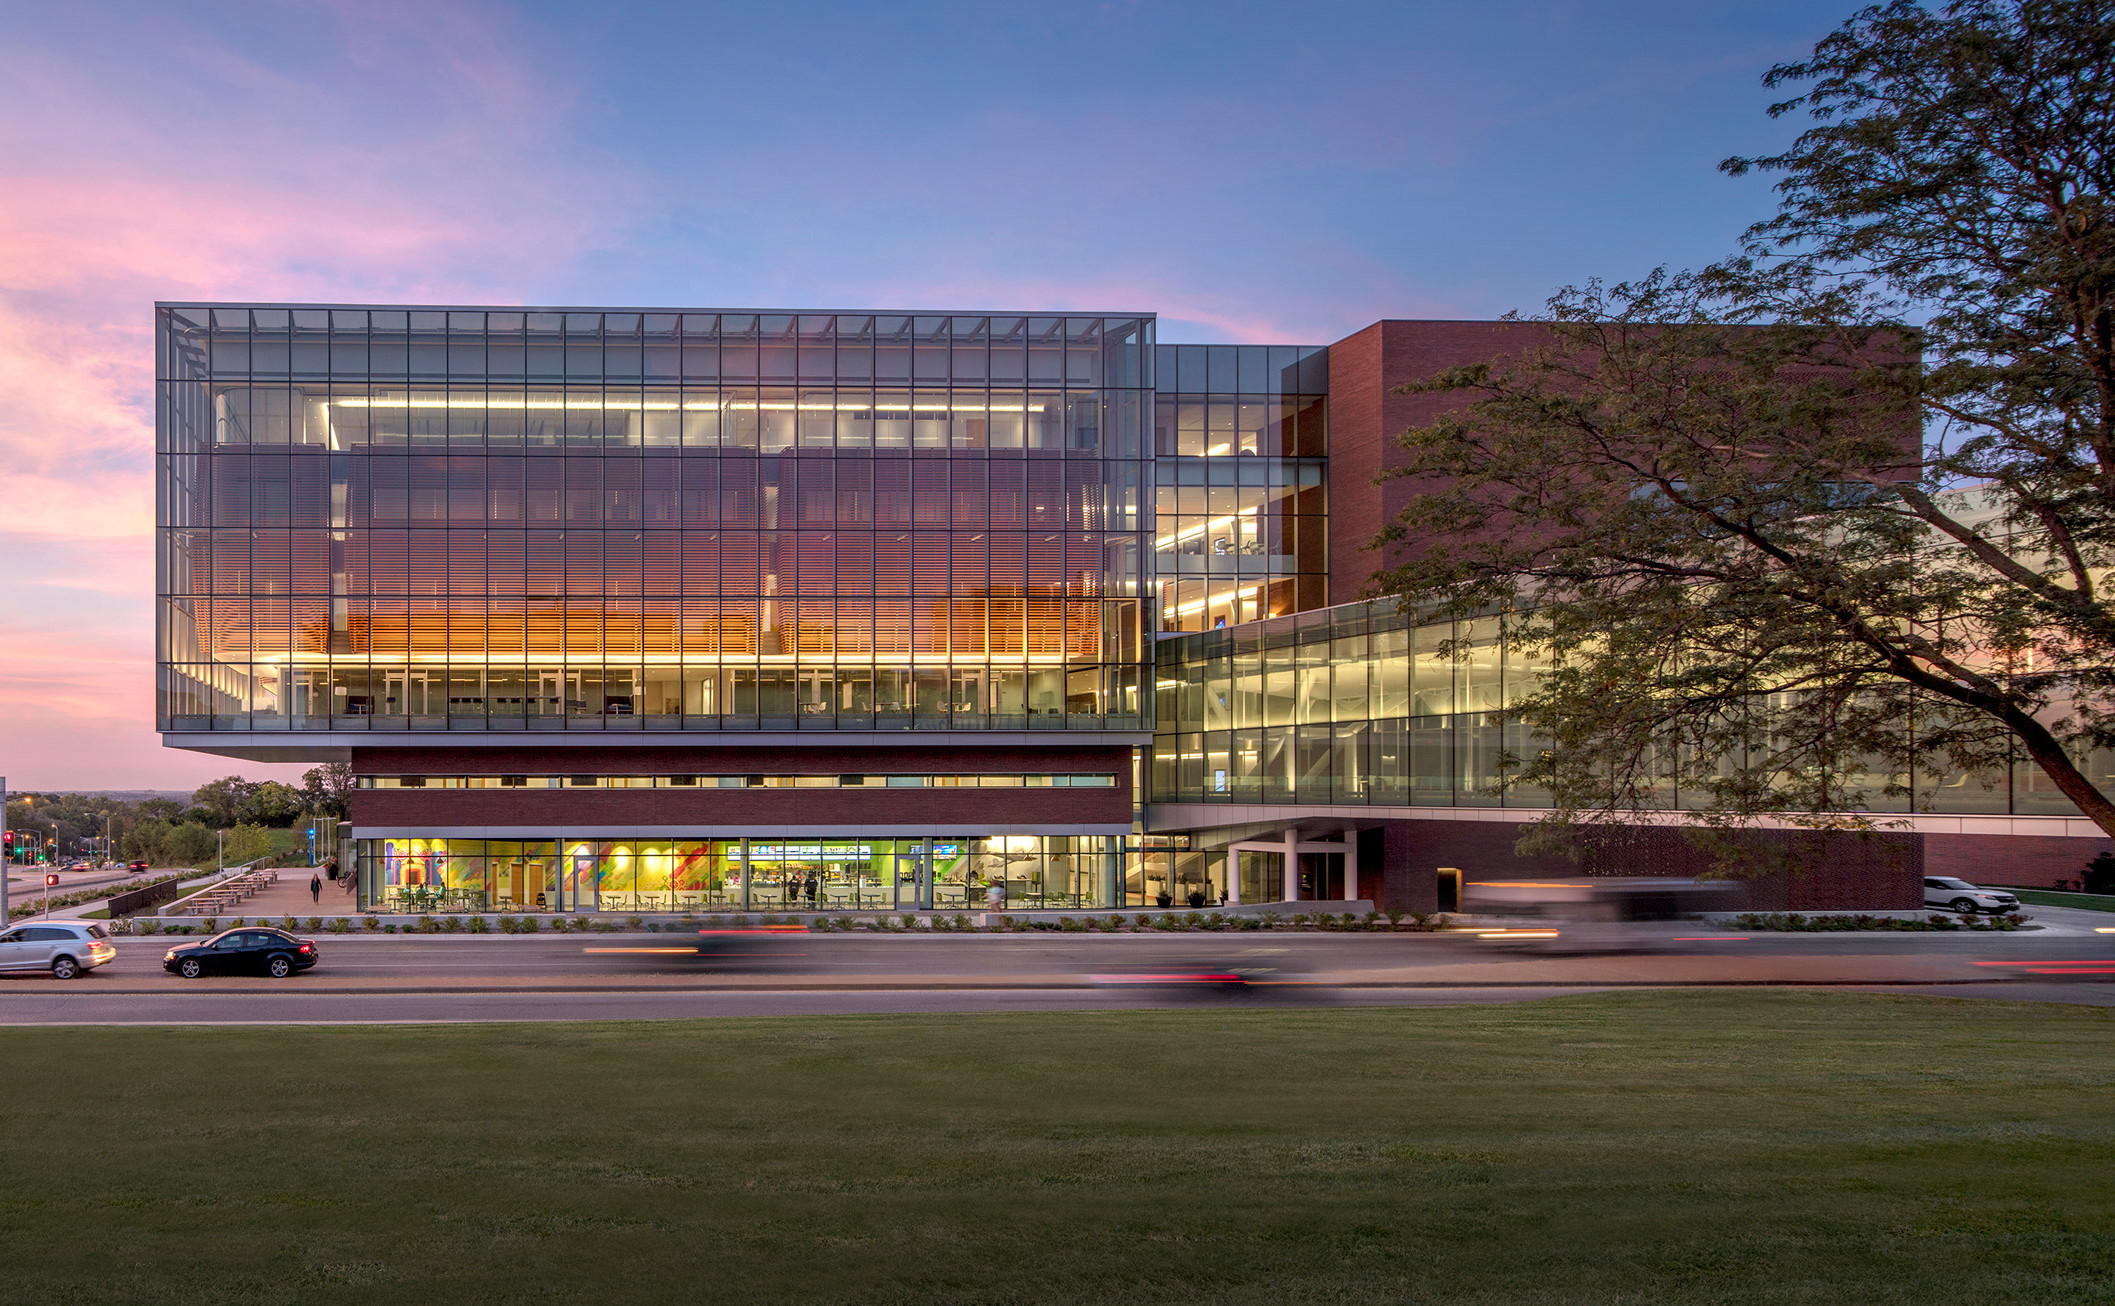 medical-center-university-of-kansas-co-architects-architecture-kansas-city-usa_dezeen_2364_col_4